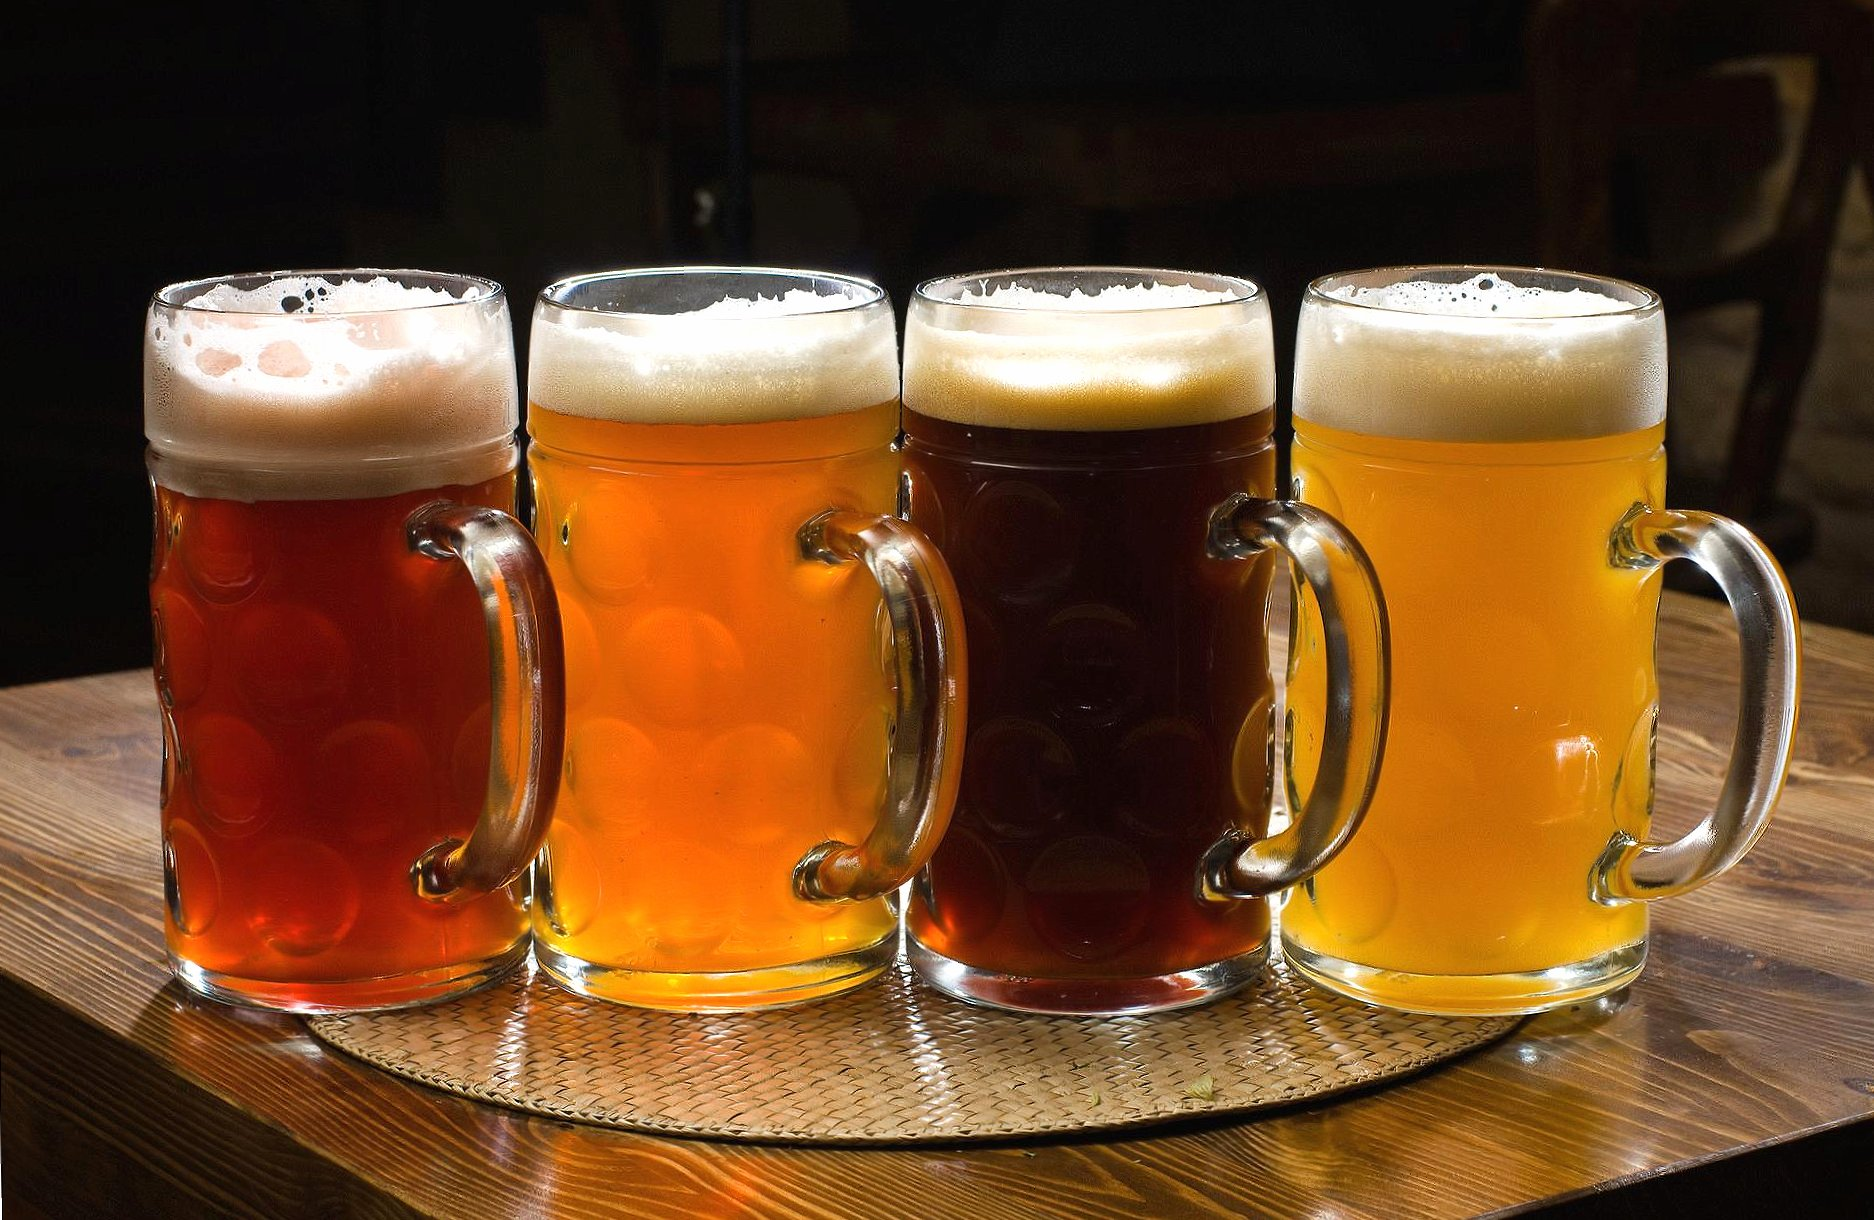 Four glasses of different beer wallpapers HD quality